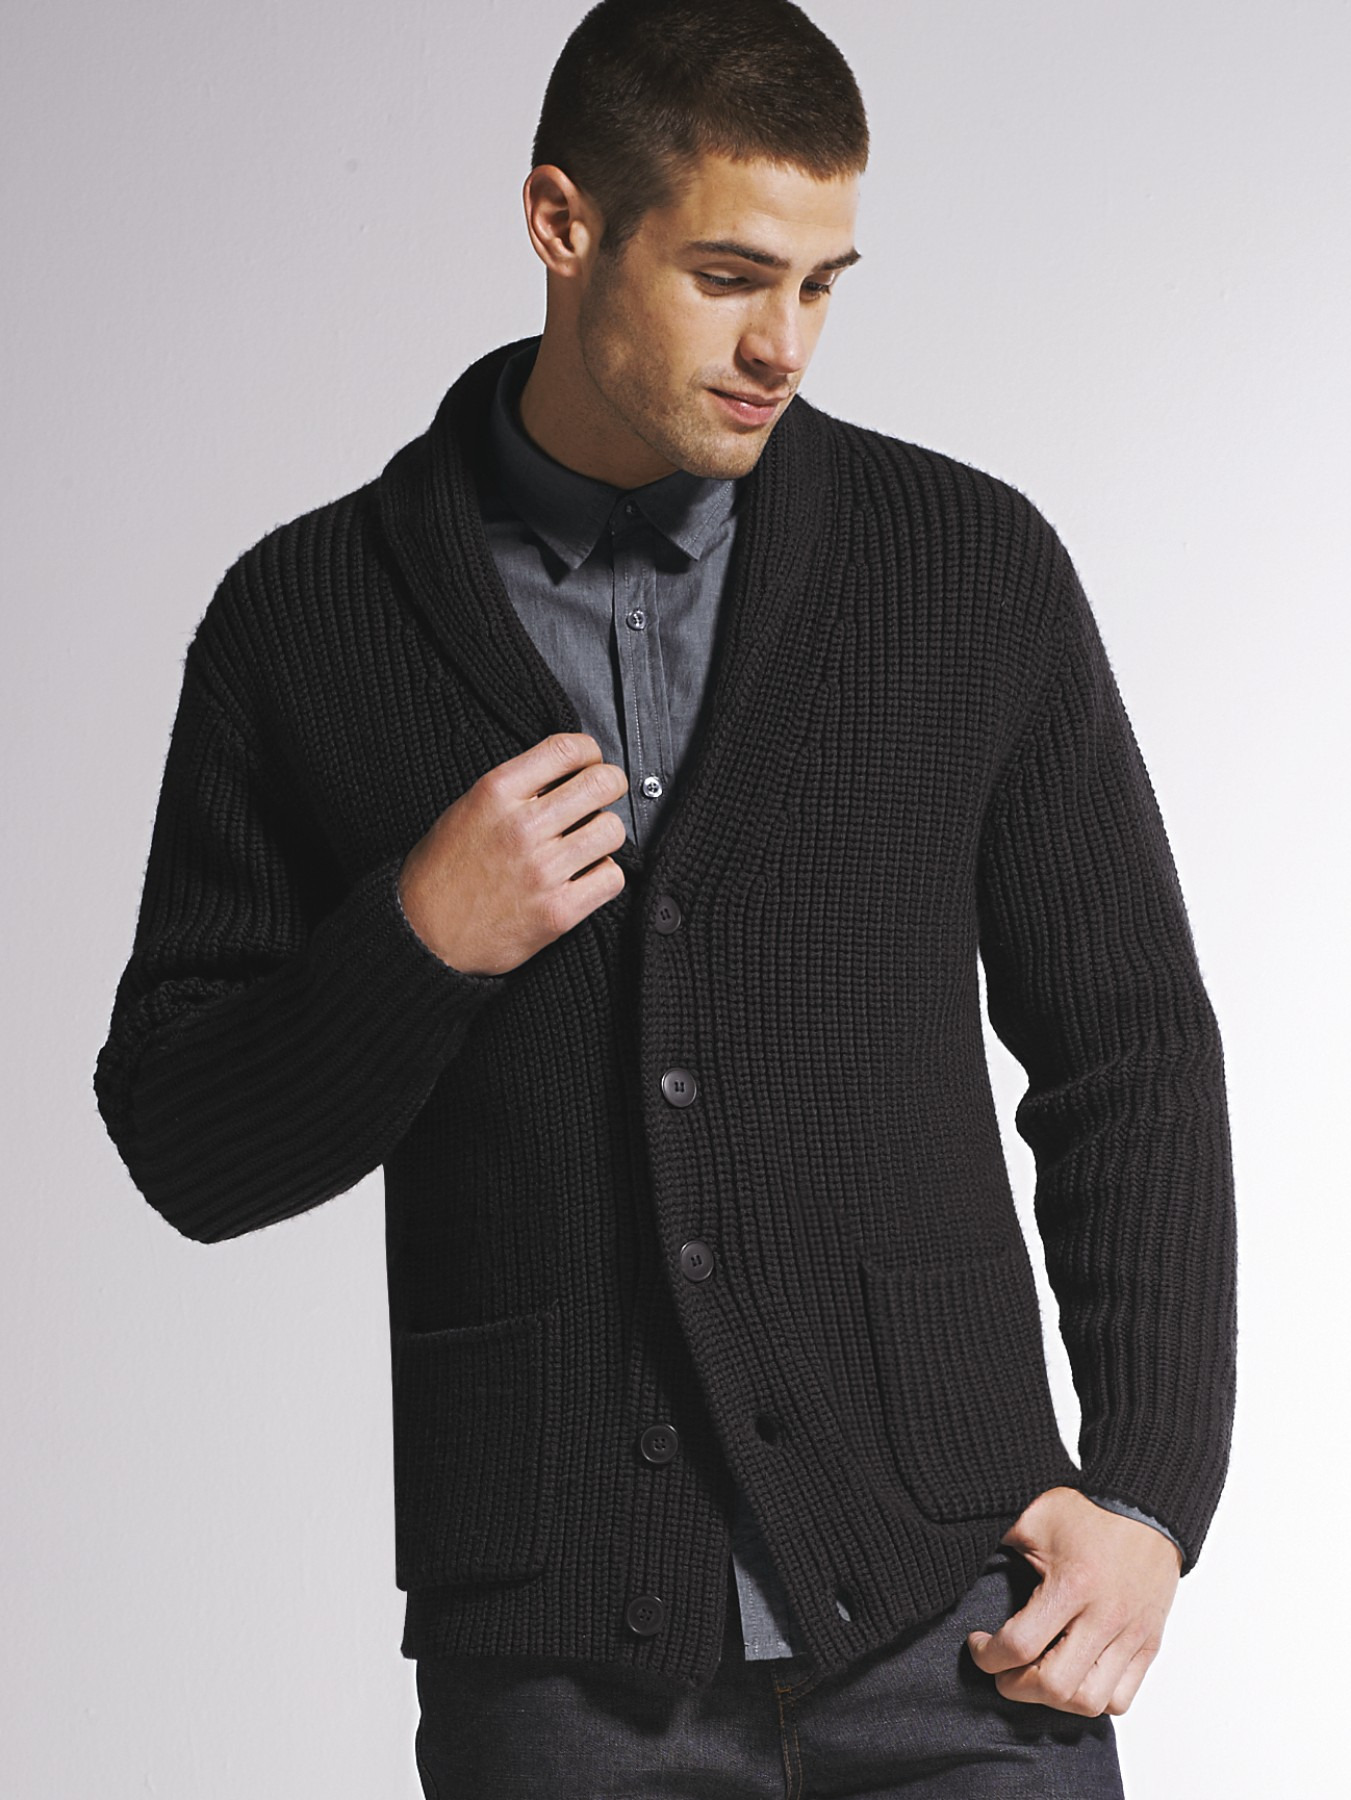 Chad White For Littlewoods Fall Winter 2010 Catalogue